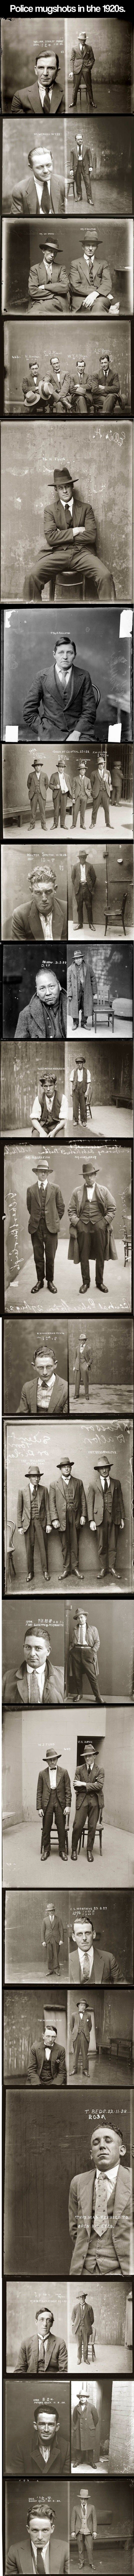 Police mugshots in the 1920s... Just badass.